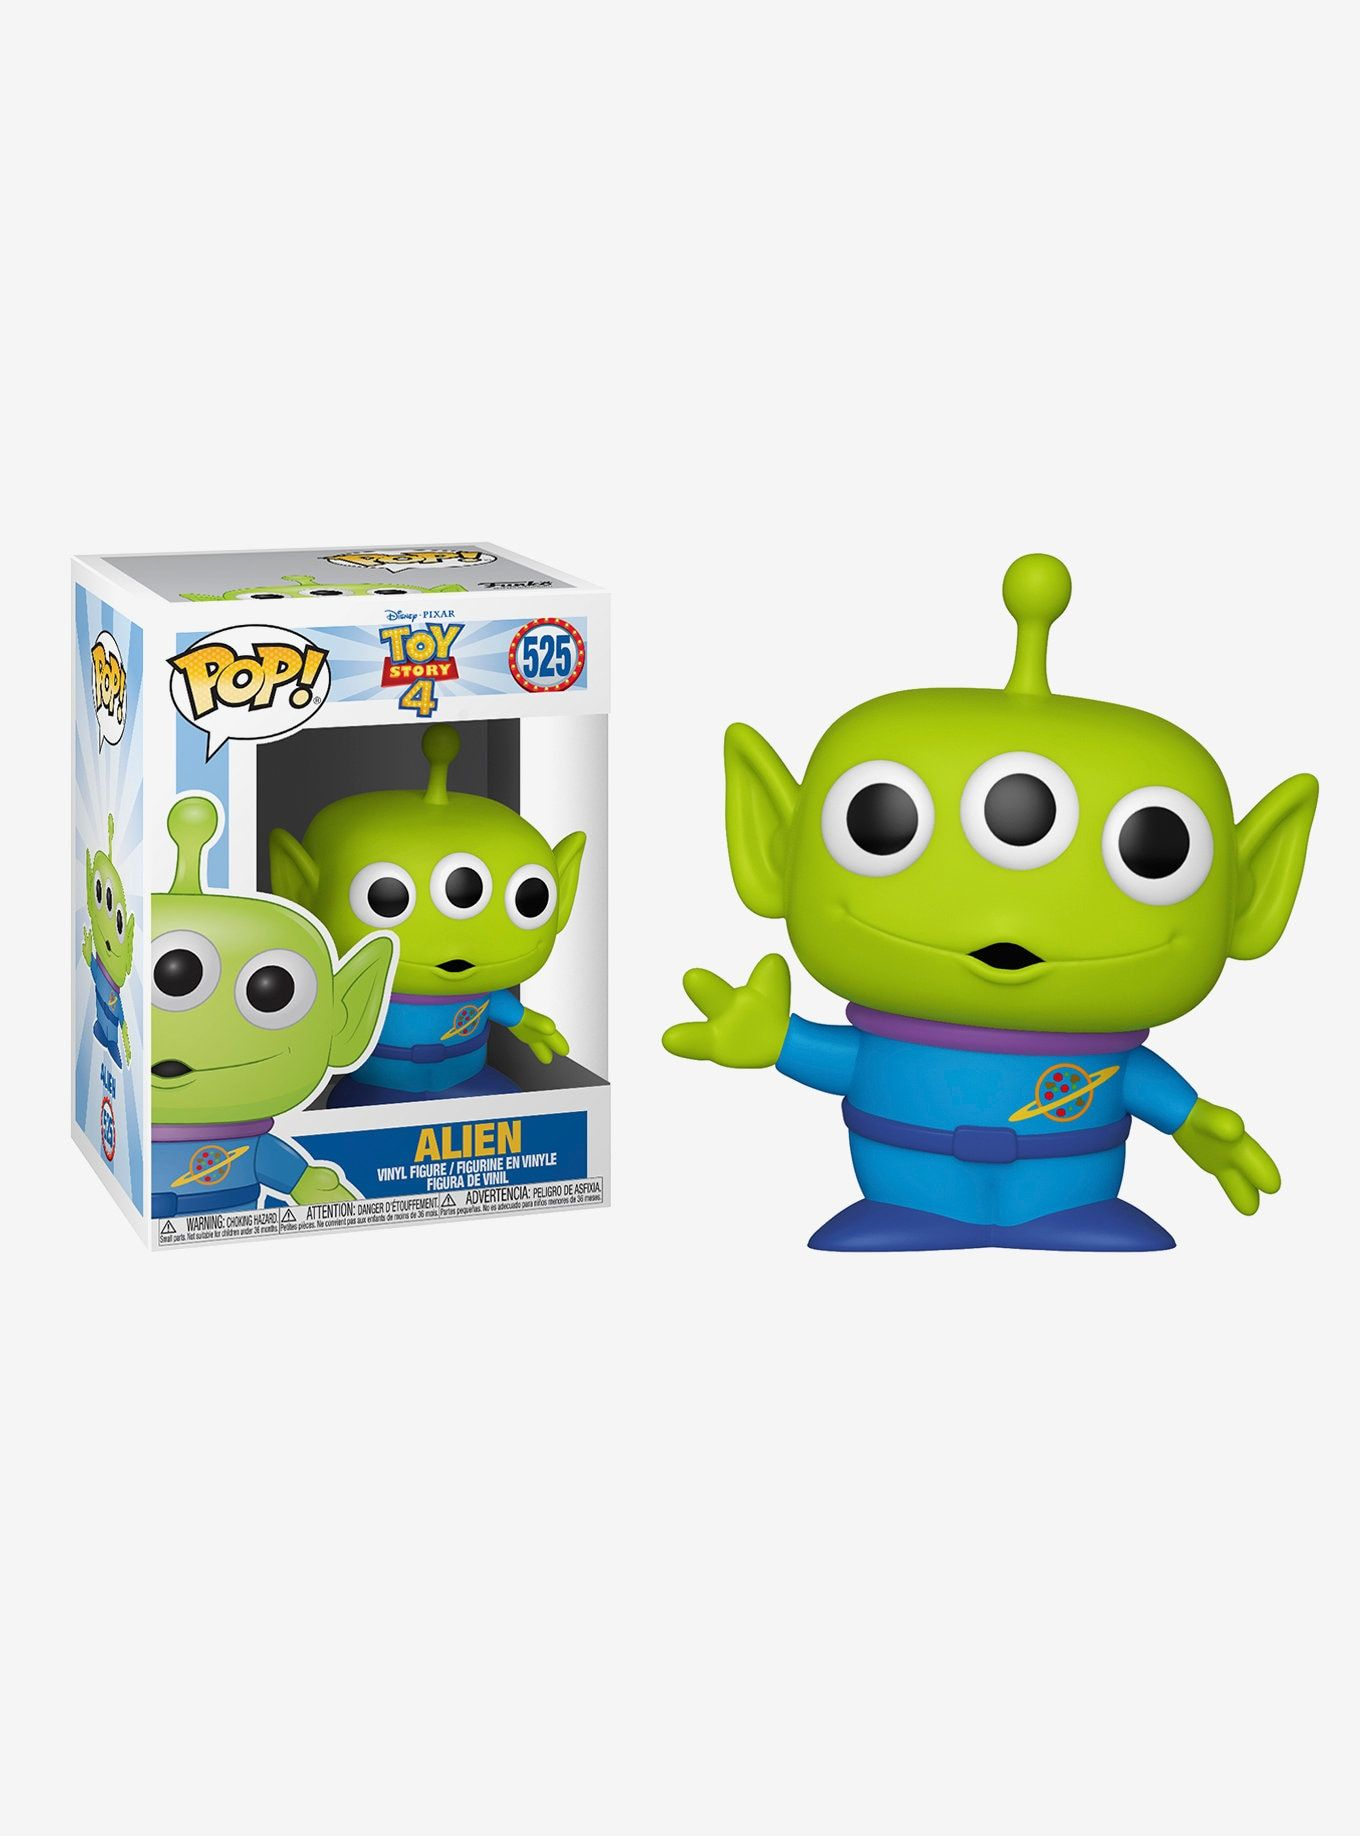 Funko Pop! Disney Pixar Toy Story 4 Alien Vinyl Figure